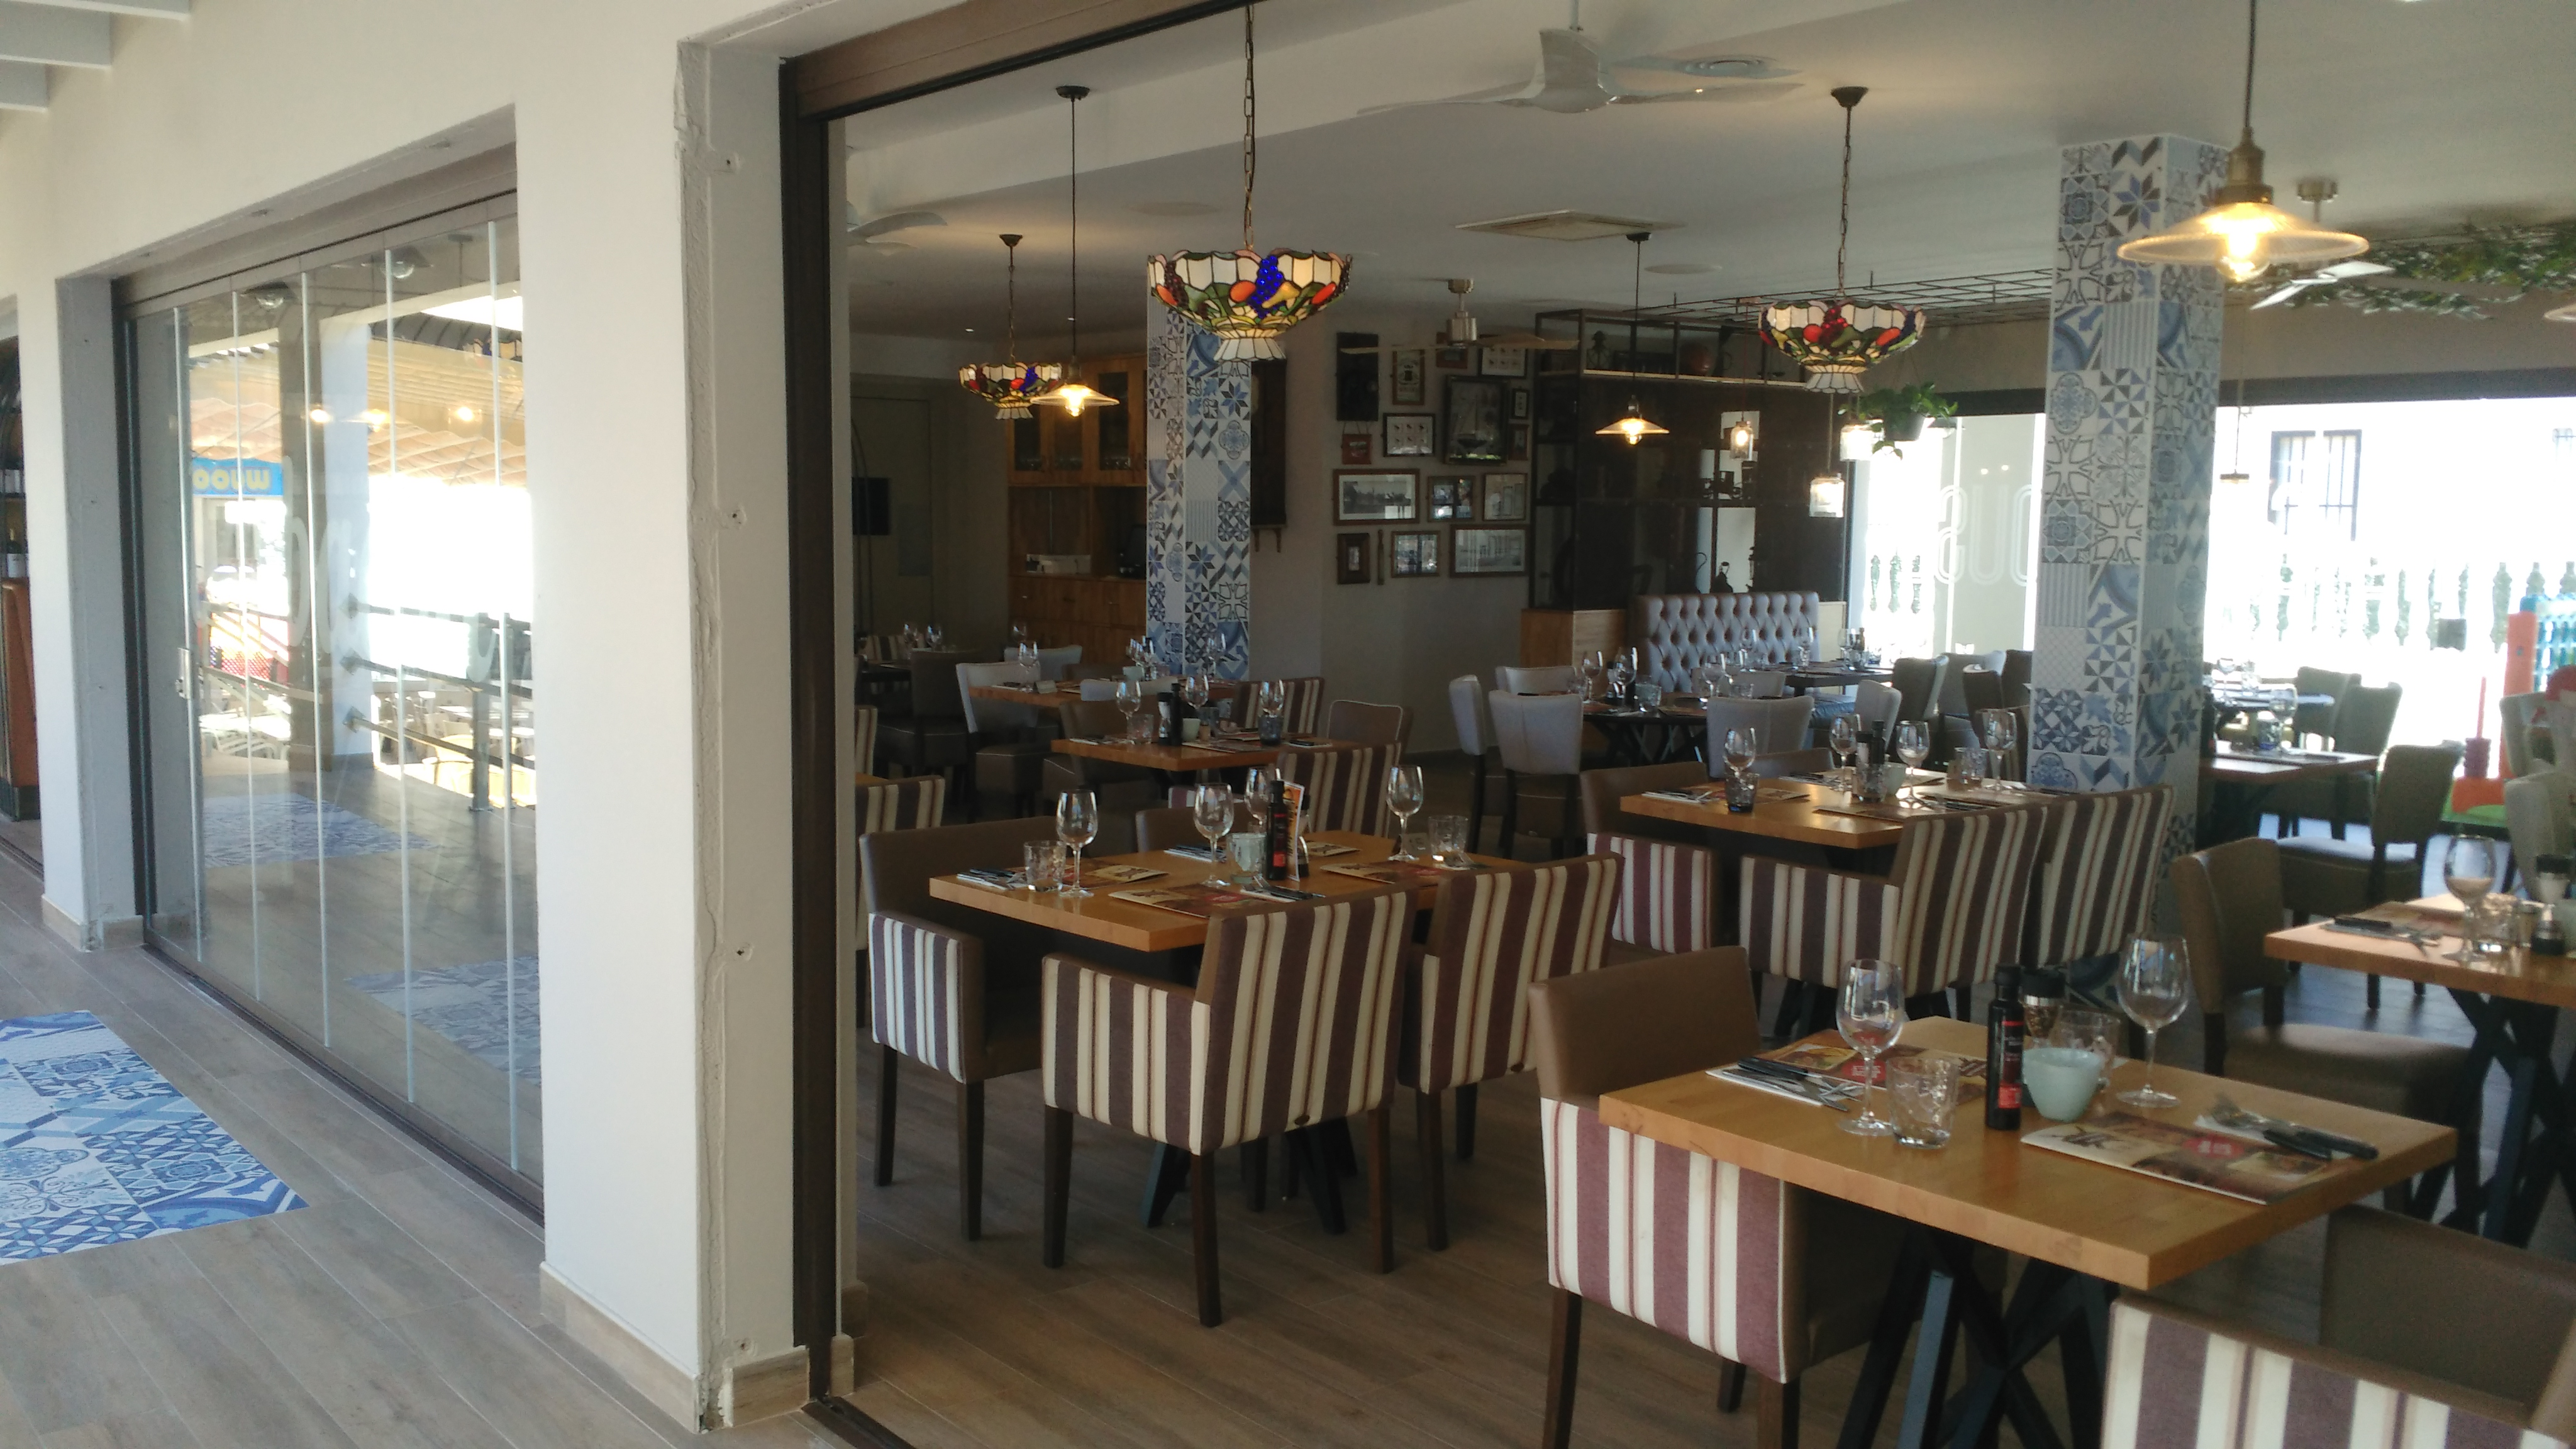 The grill house the best grill house on the costa blanca - The grill house restaurant ...